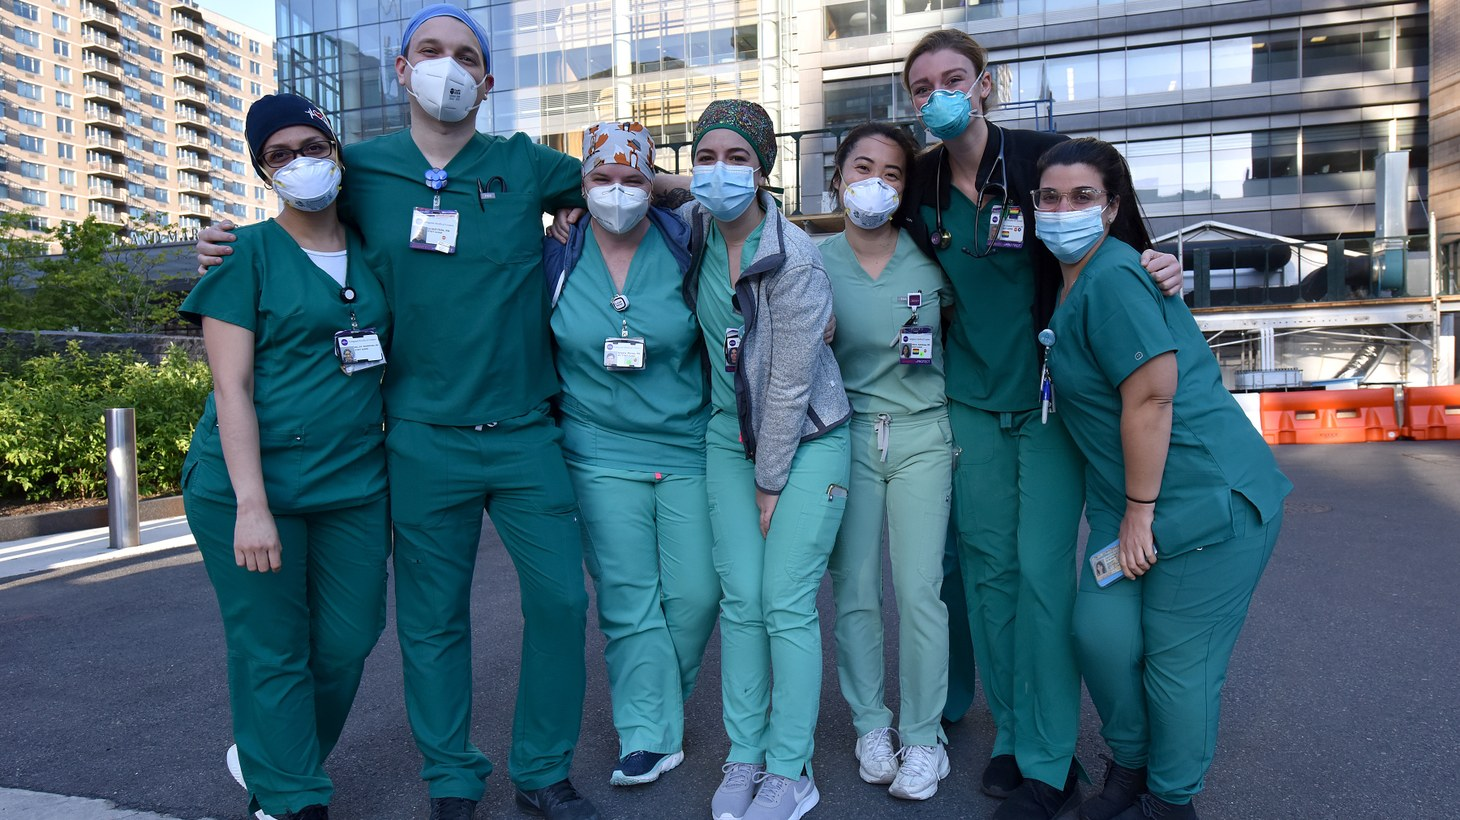 Nurses pose outside NYU Langone Medical Center during the nightly 7pm applause and cheers in honor of frontline medical workers during the COVID-19 pandemic, in New York, NY, May 13, 2020